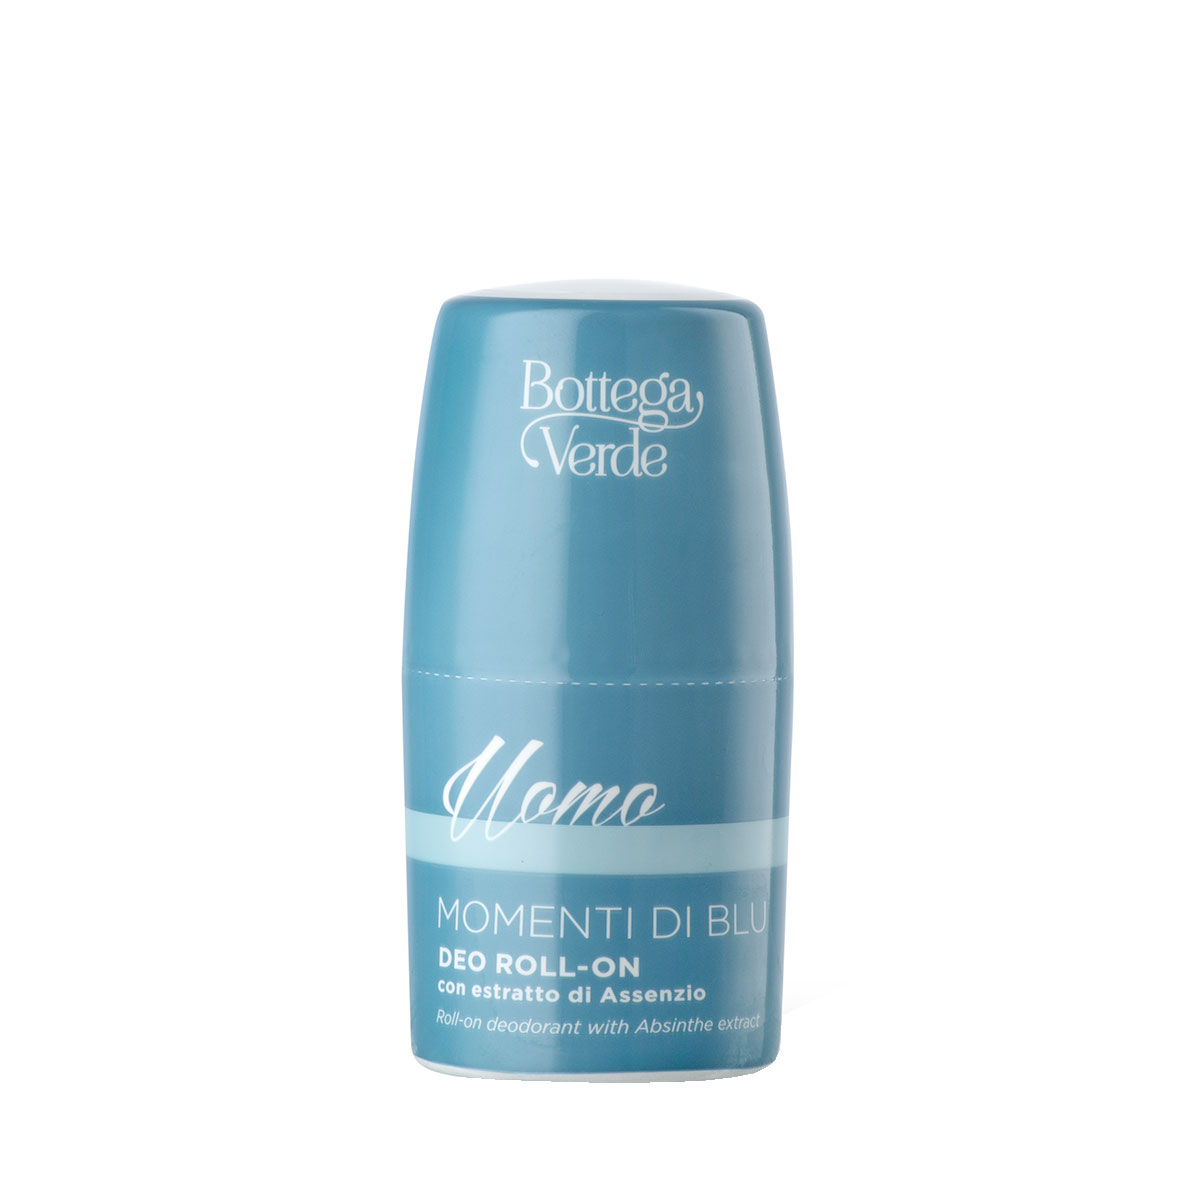 Deodorant roll-on delicat, cu extract de absint imagine